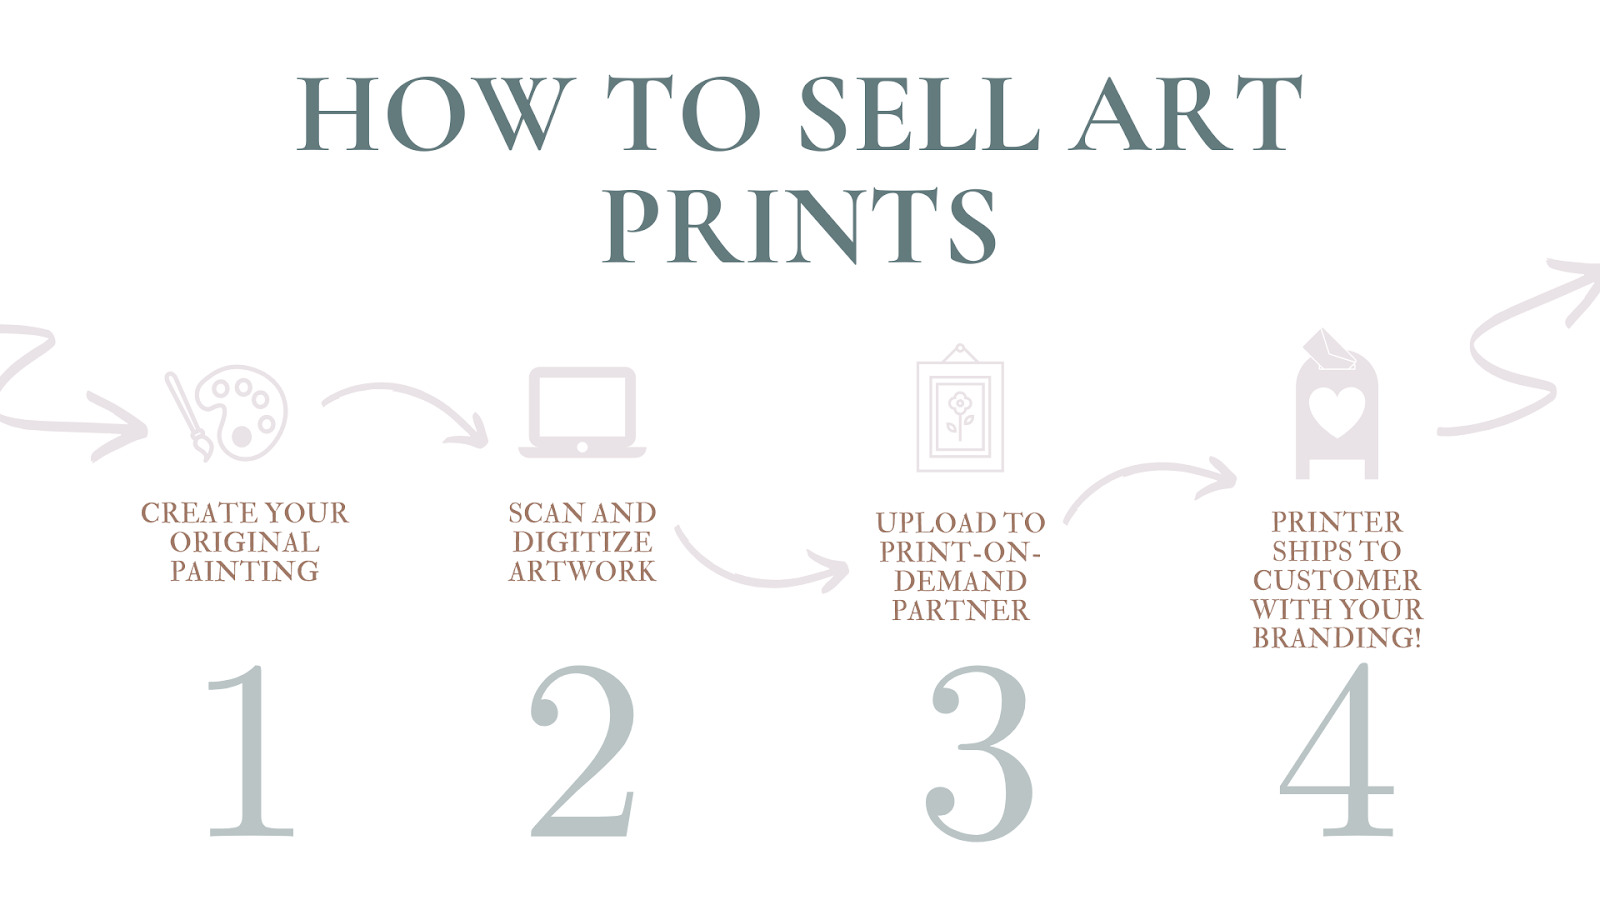 How to Sell Art Prints without Carrying Inventory or Shipping - Print On Demand Art Prints